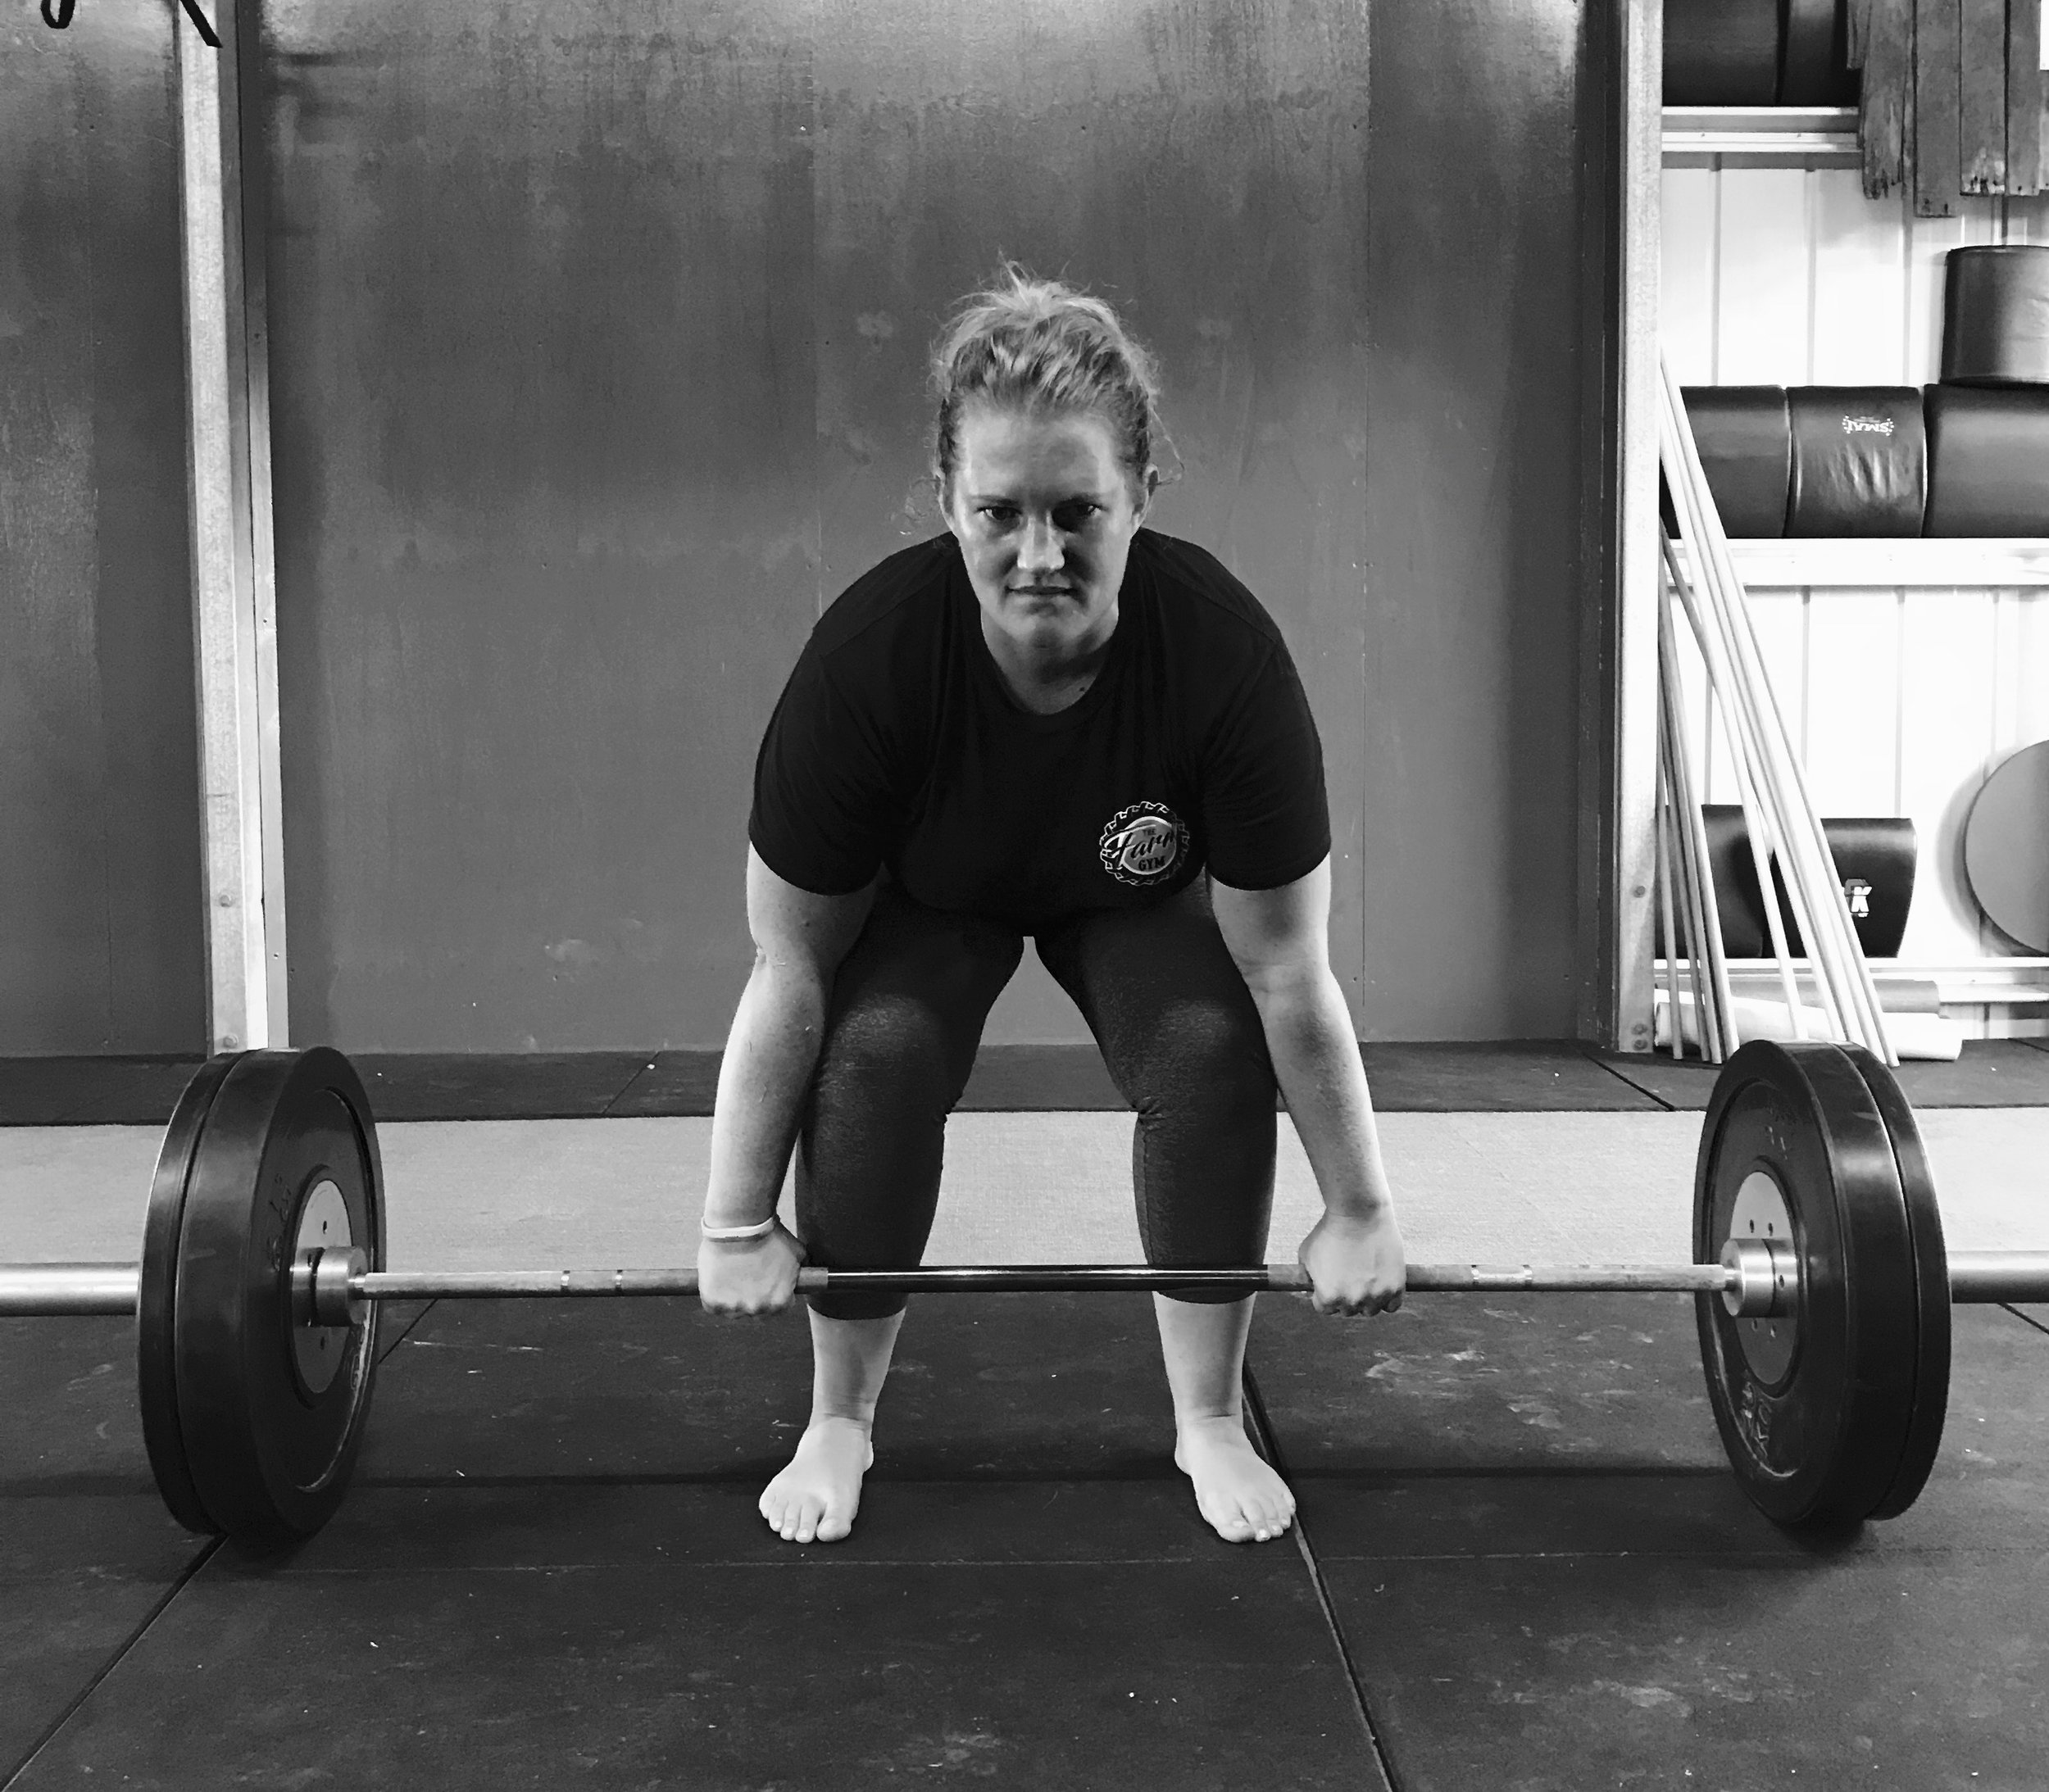 Kate with an incredible Deadlift - power and strength